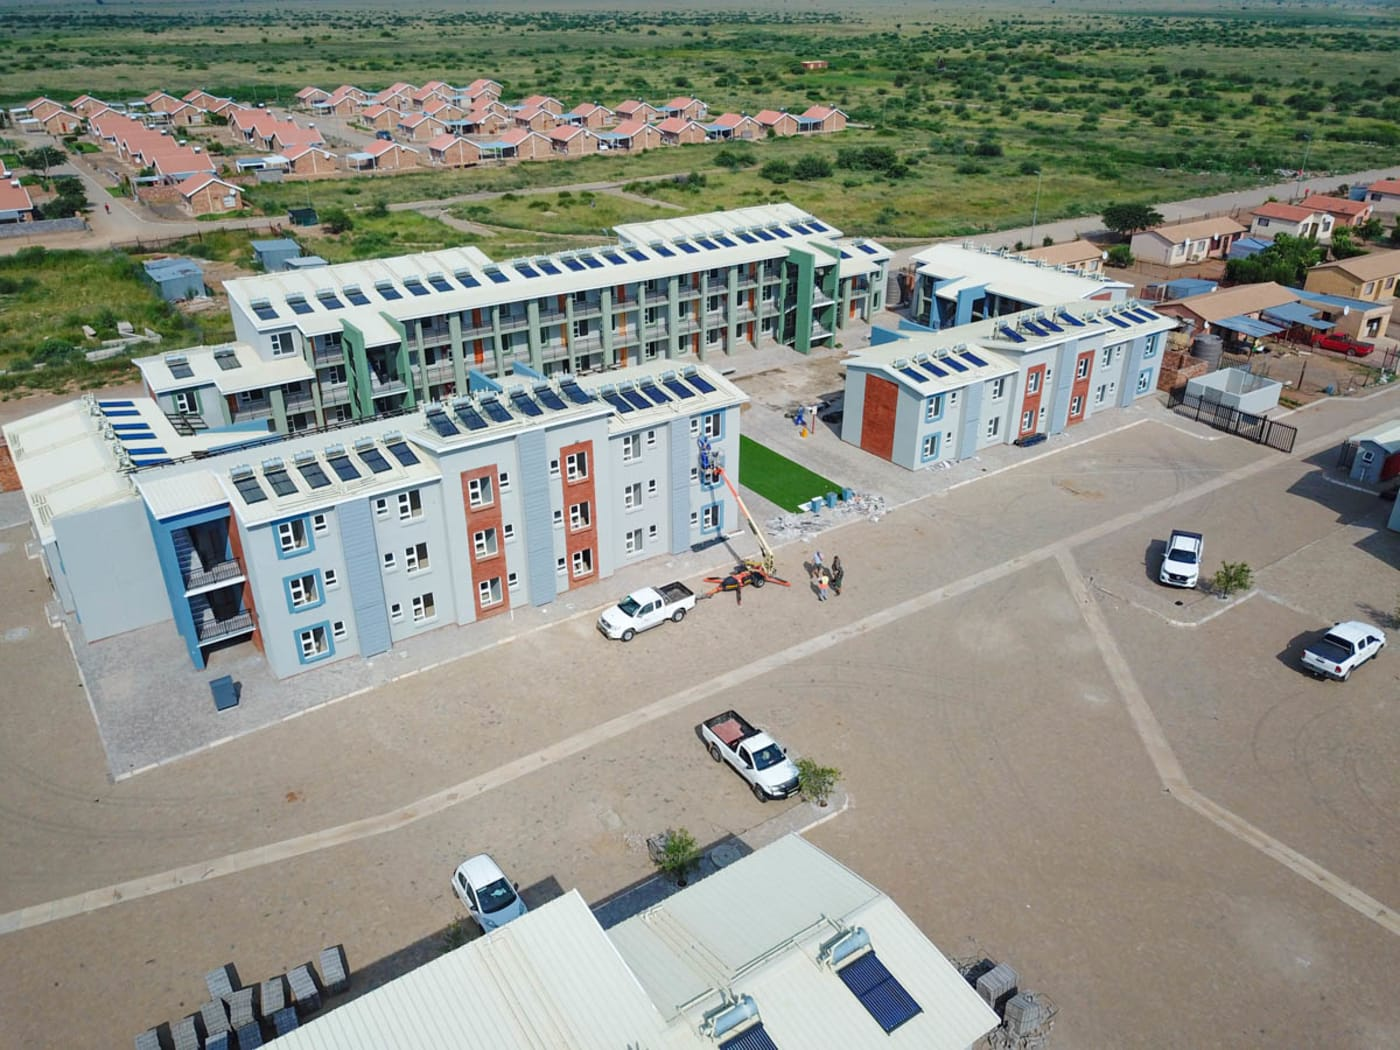 Lerato Park: Completion of the Community Residential Units